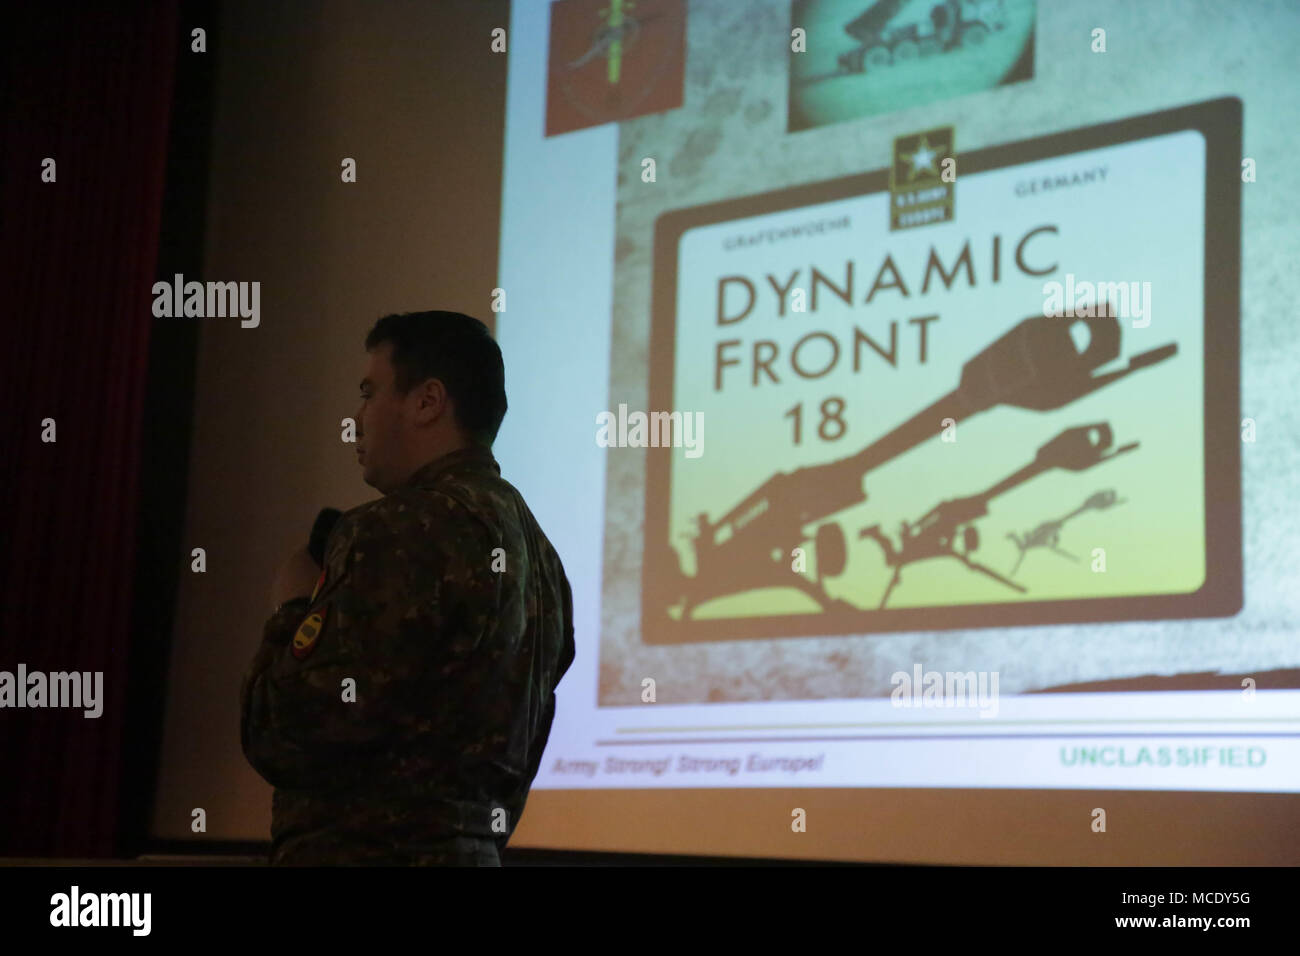 Powerpoint presentation stock photos powerpoint presentation stock a french soldier presents a powerpoint presentation while conducting an academics brief during exercise dynamic front toneelgroepblik Choice Image